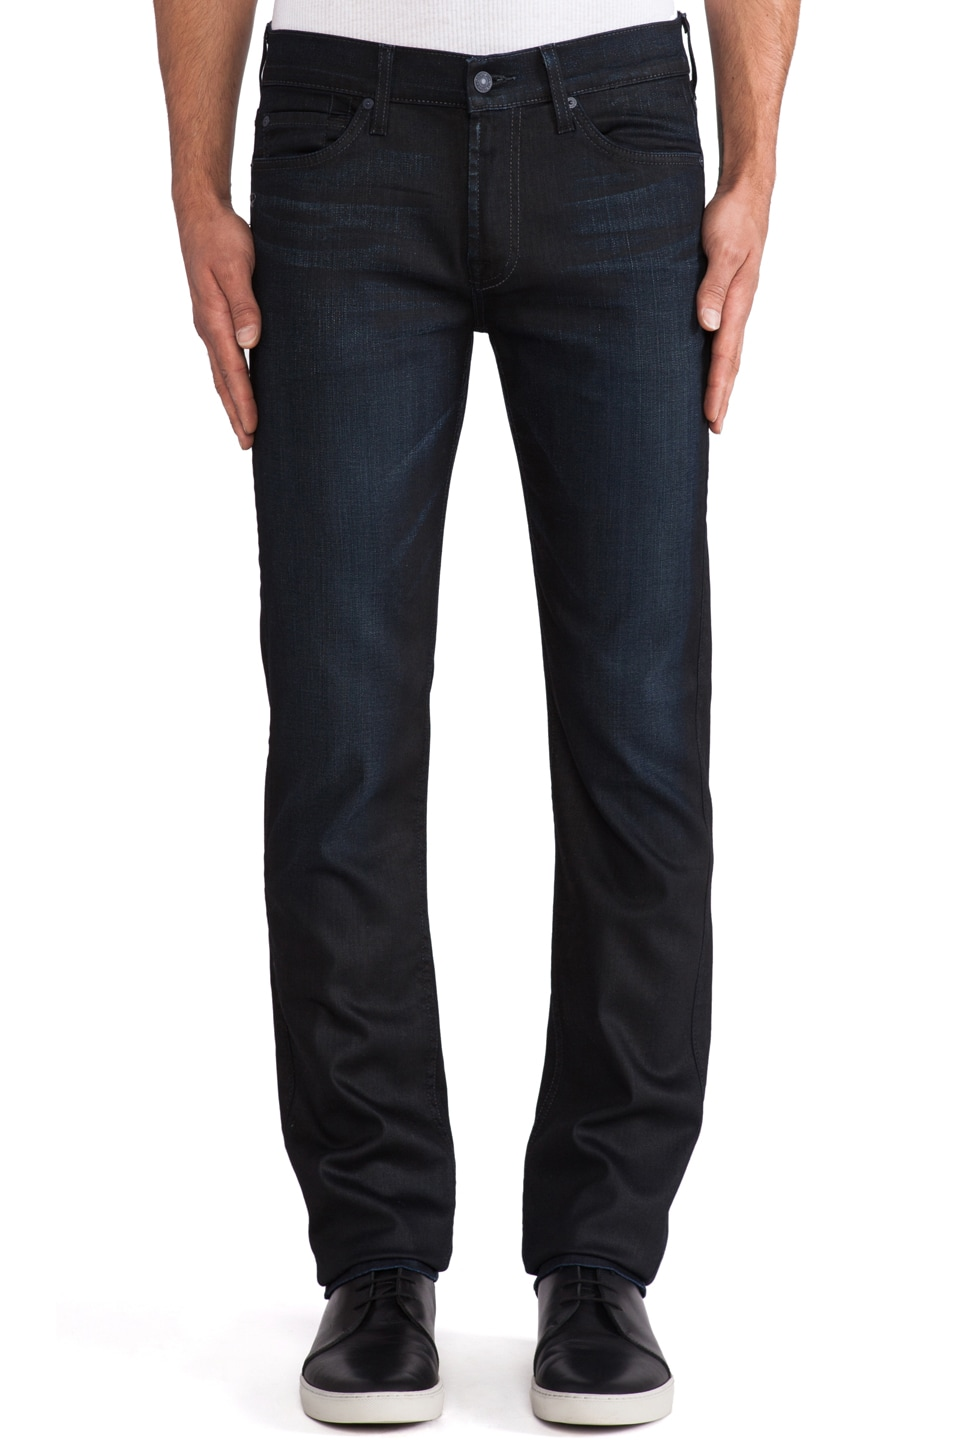 7 For All Mankind Slimmy in Black Bay